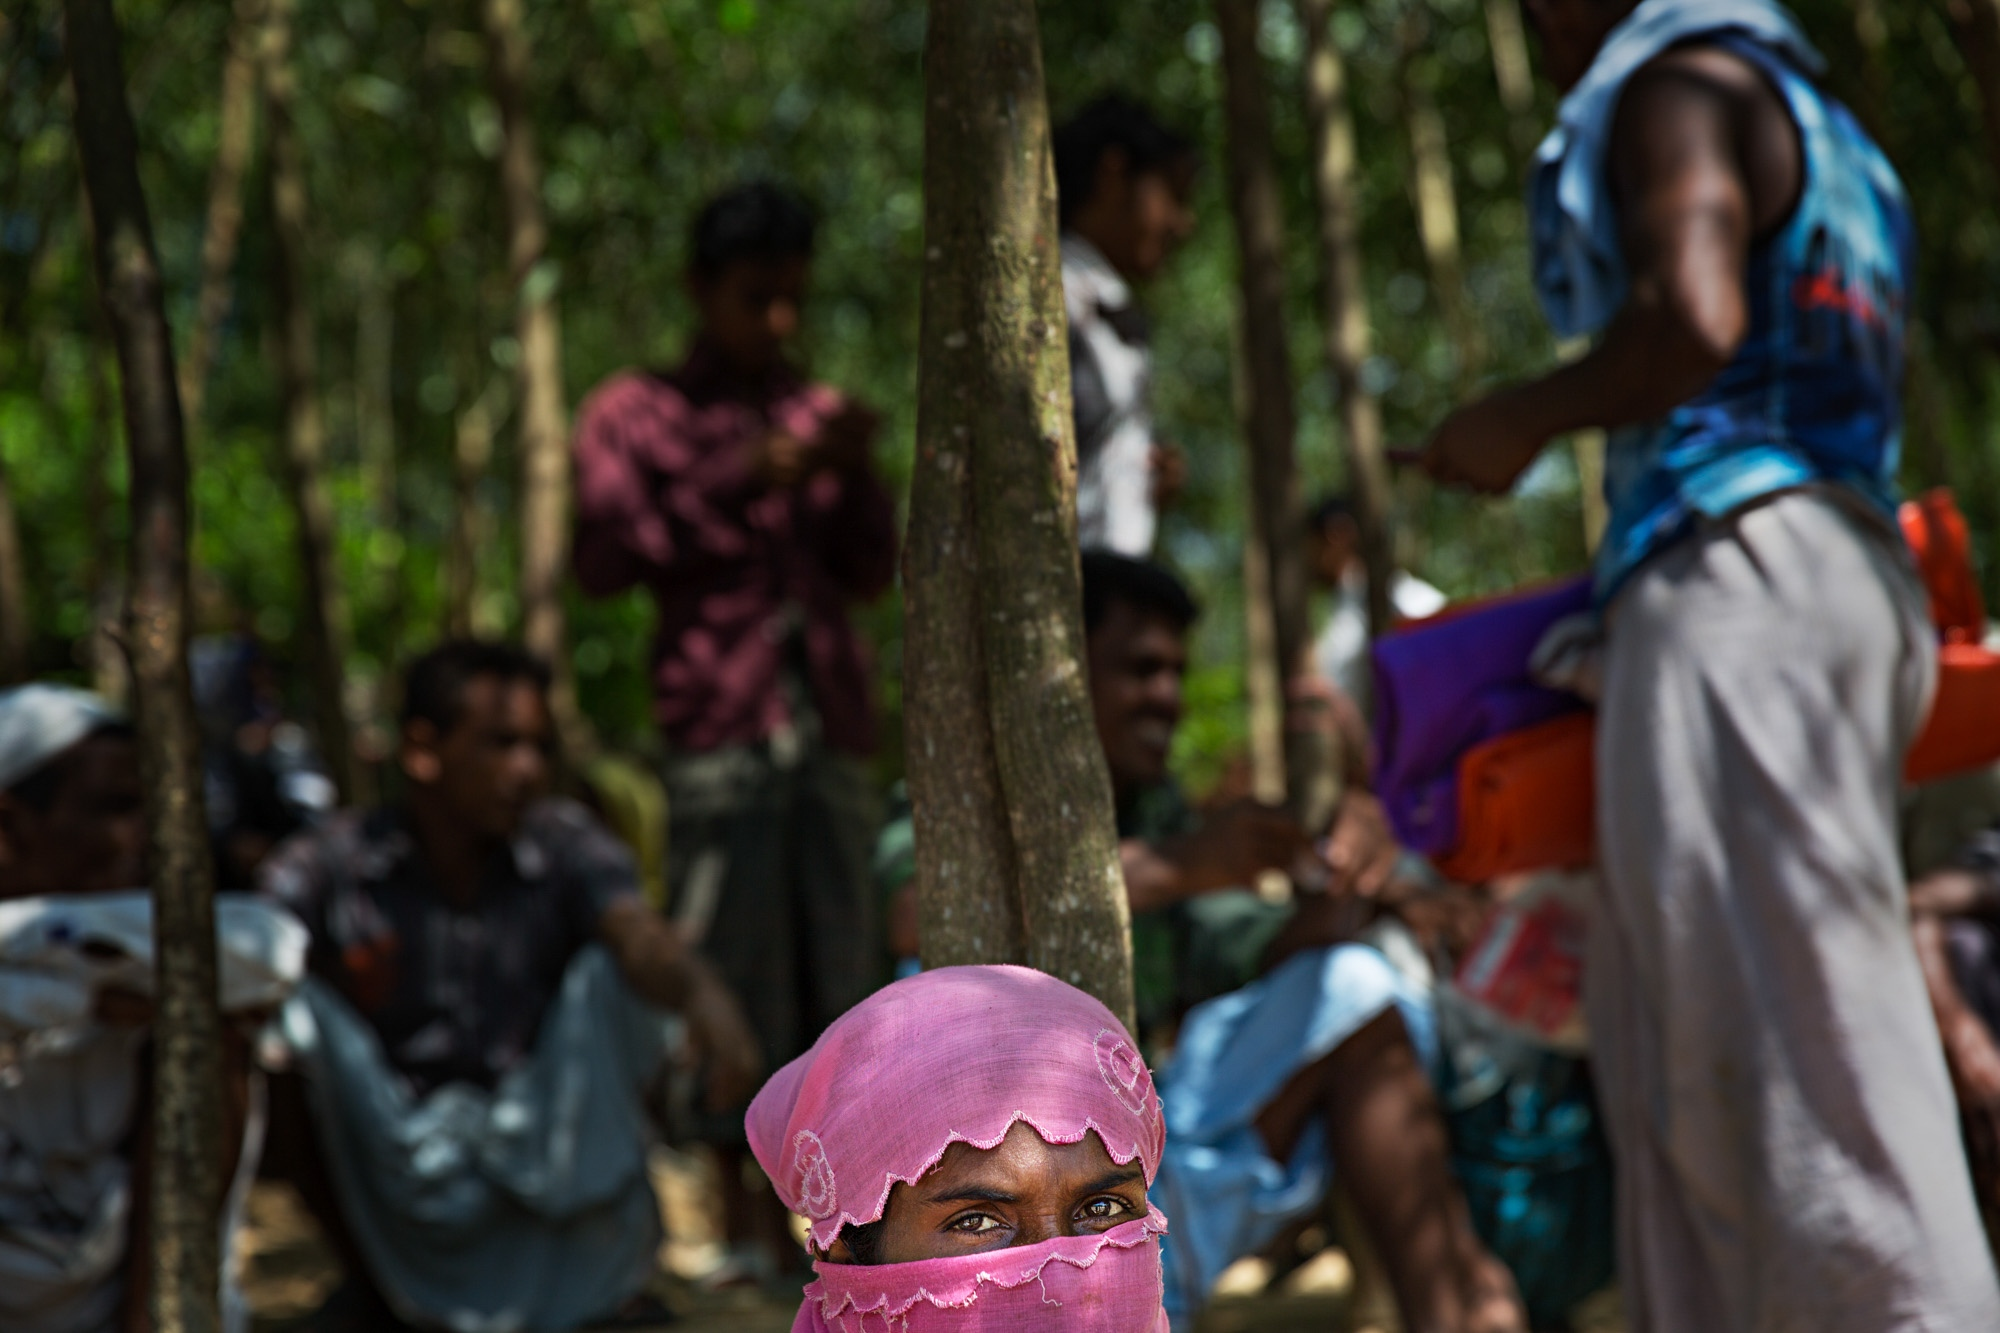 A Rohingya woman awaits camp assignment in the shade on the edge of the road on October. New arrivals from Myanmar waited for camp assignment by the roadside in whatever shade they could find for an undesignated amount of time.